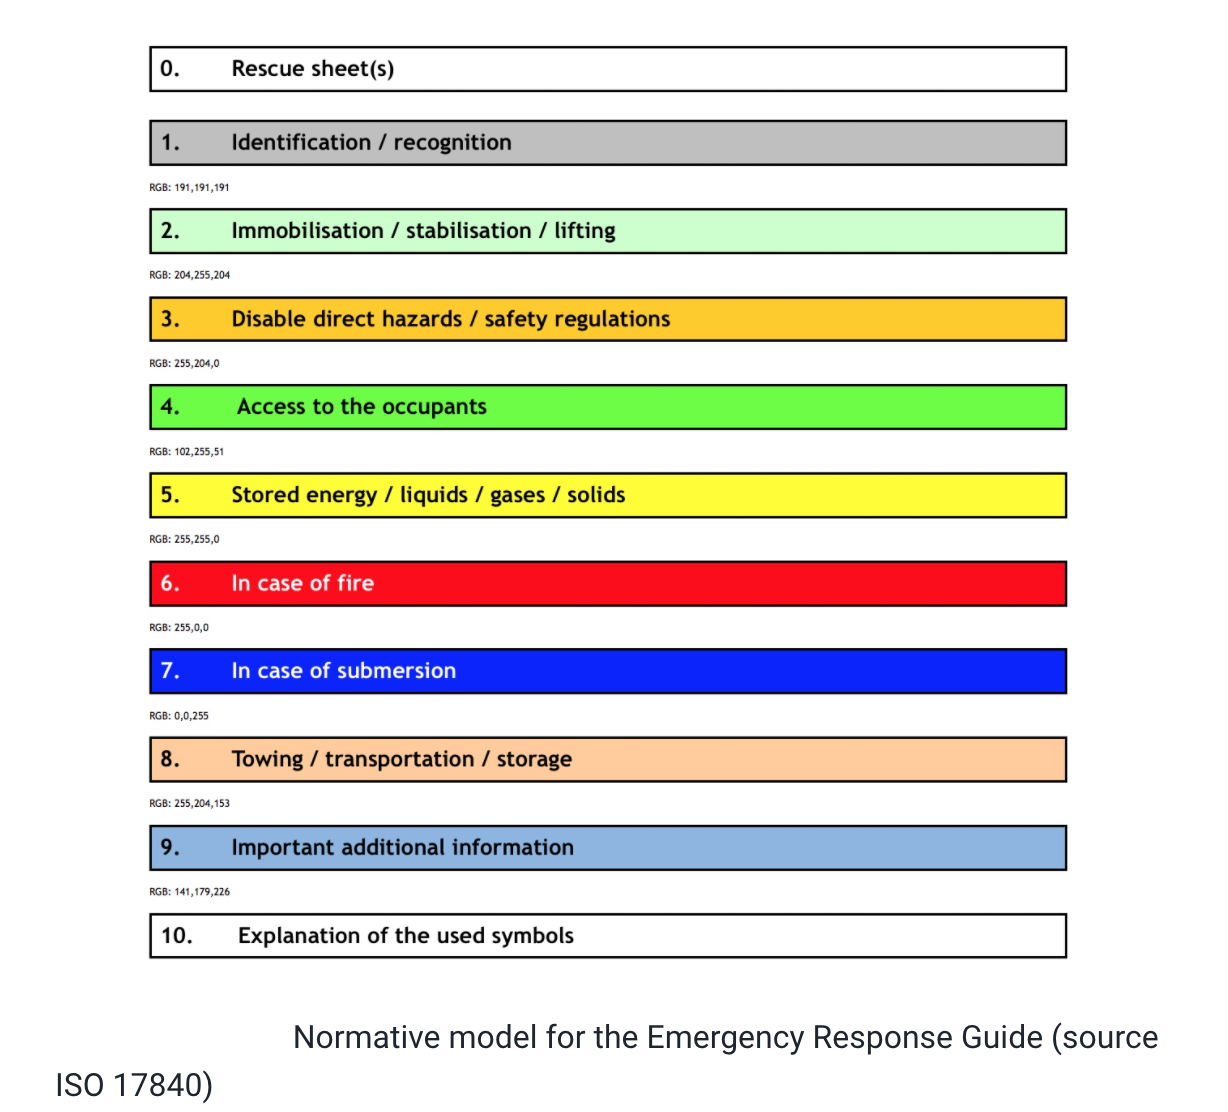 Normative model for the Emergency Response Guide